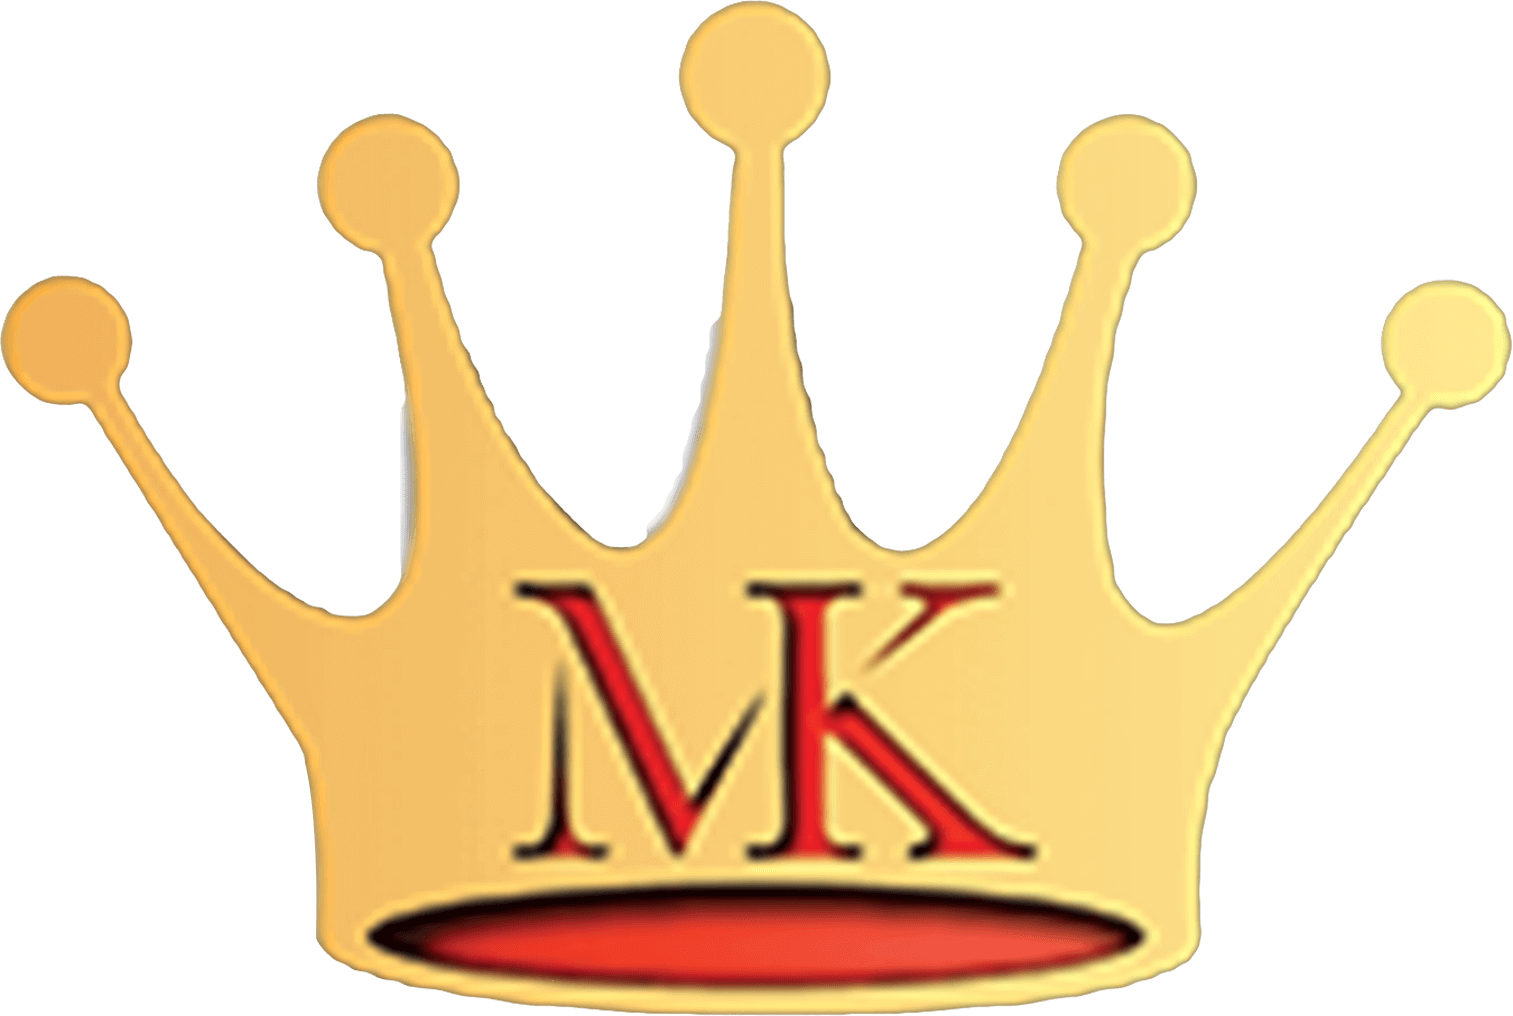 Mattress Kings Logo